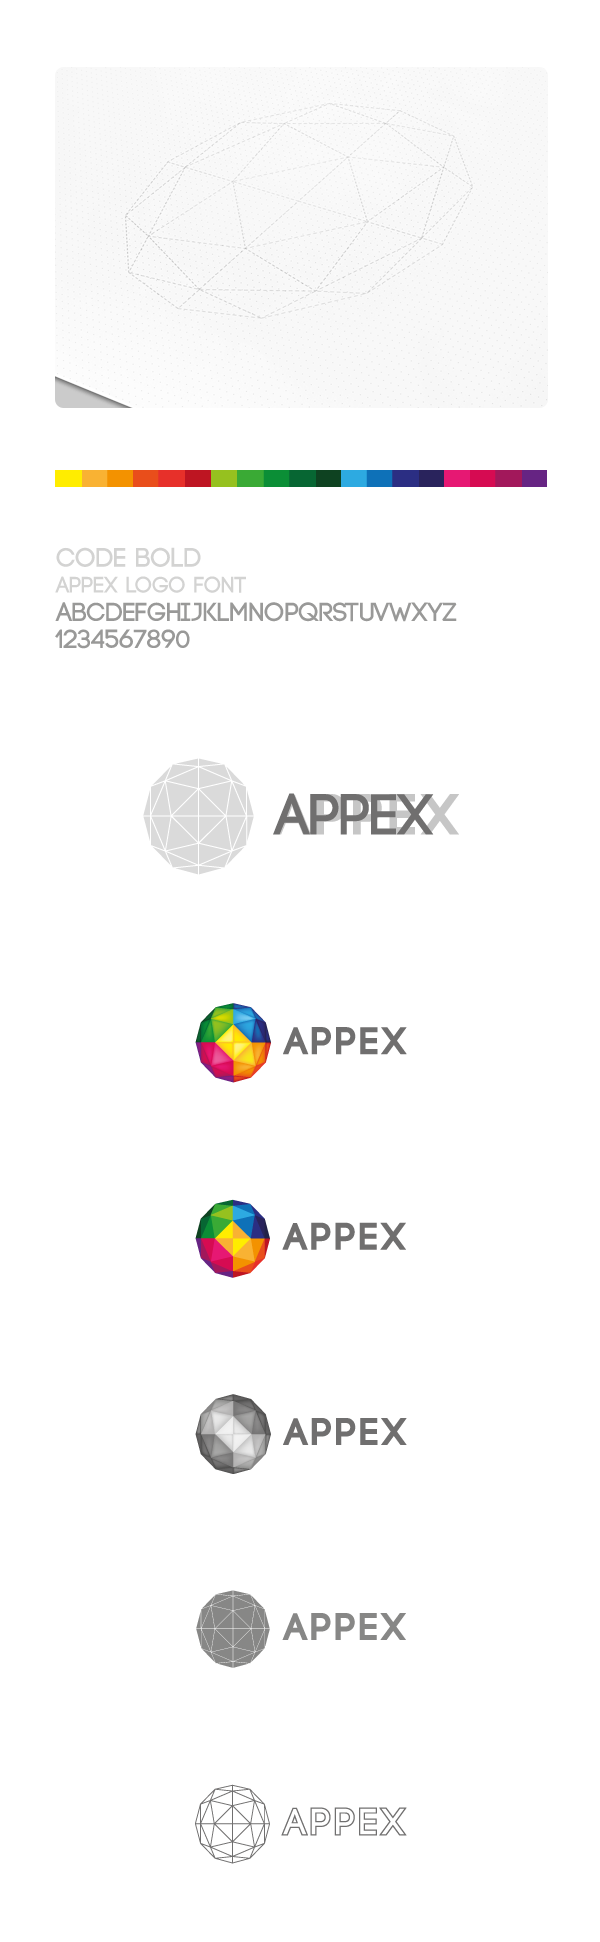 appex business case 1990 business week named appex corp the fastest growing high-technology  company in the united states appex provided management information systems .